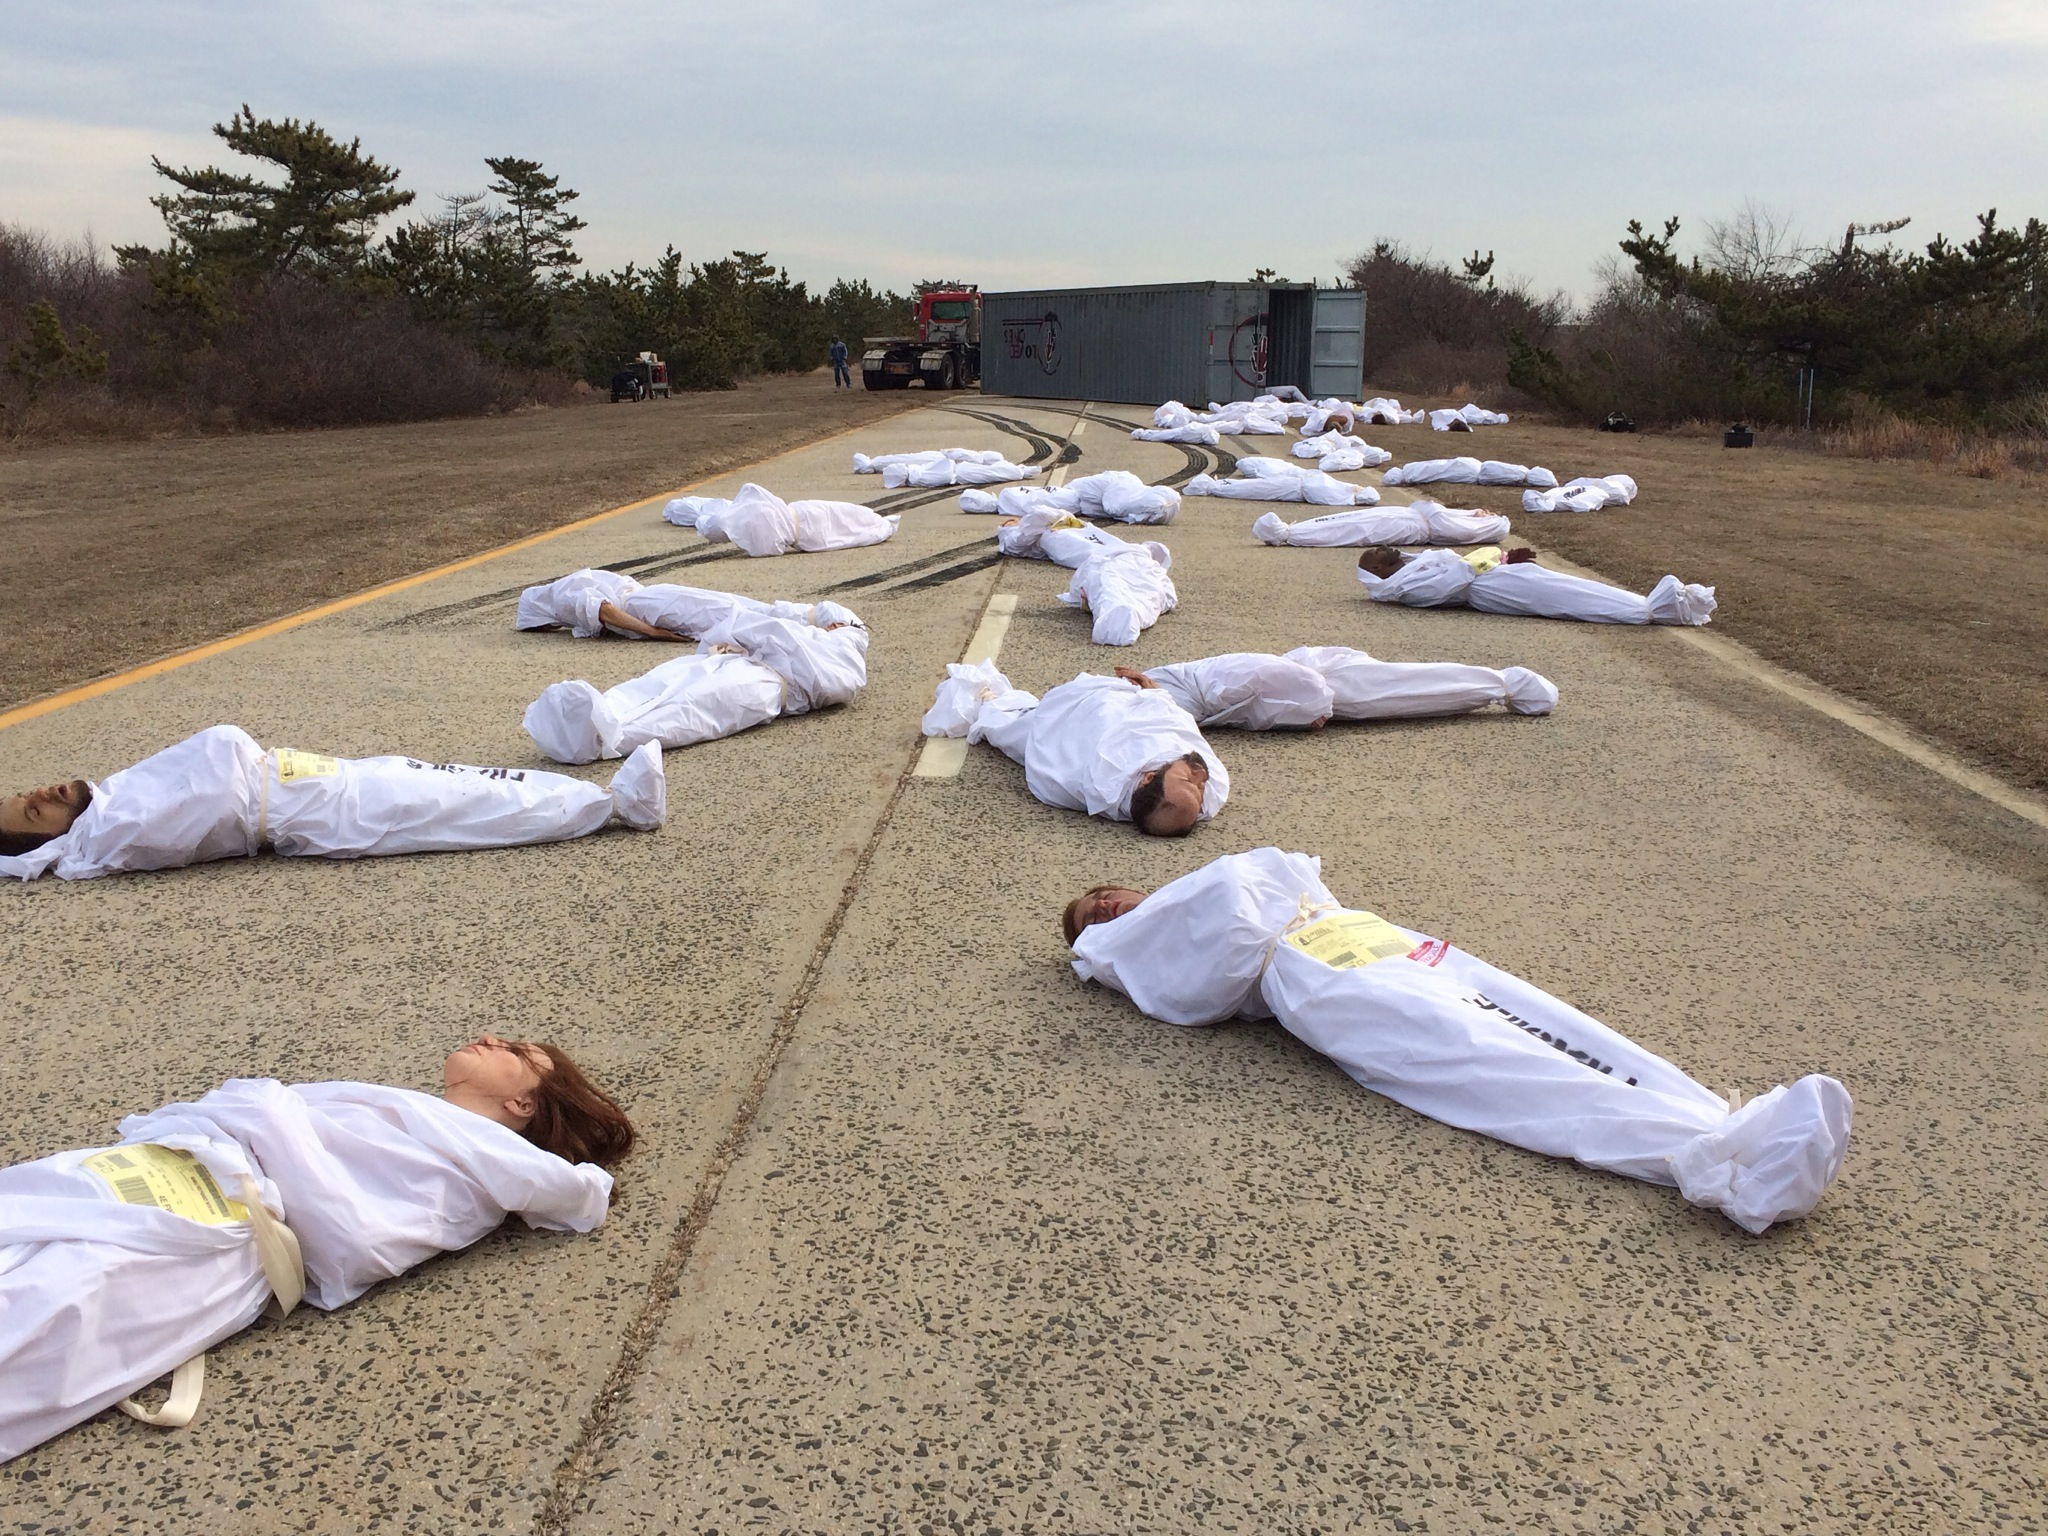 18 bodies in road 2.JPG